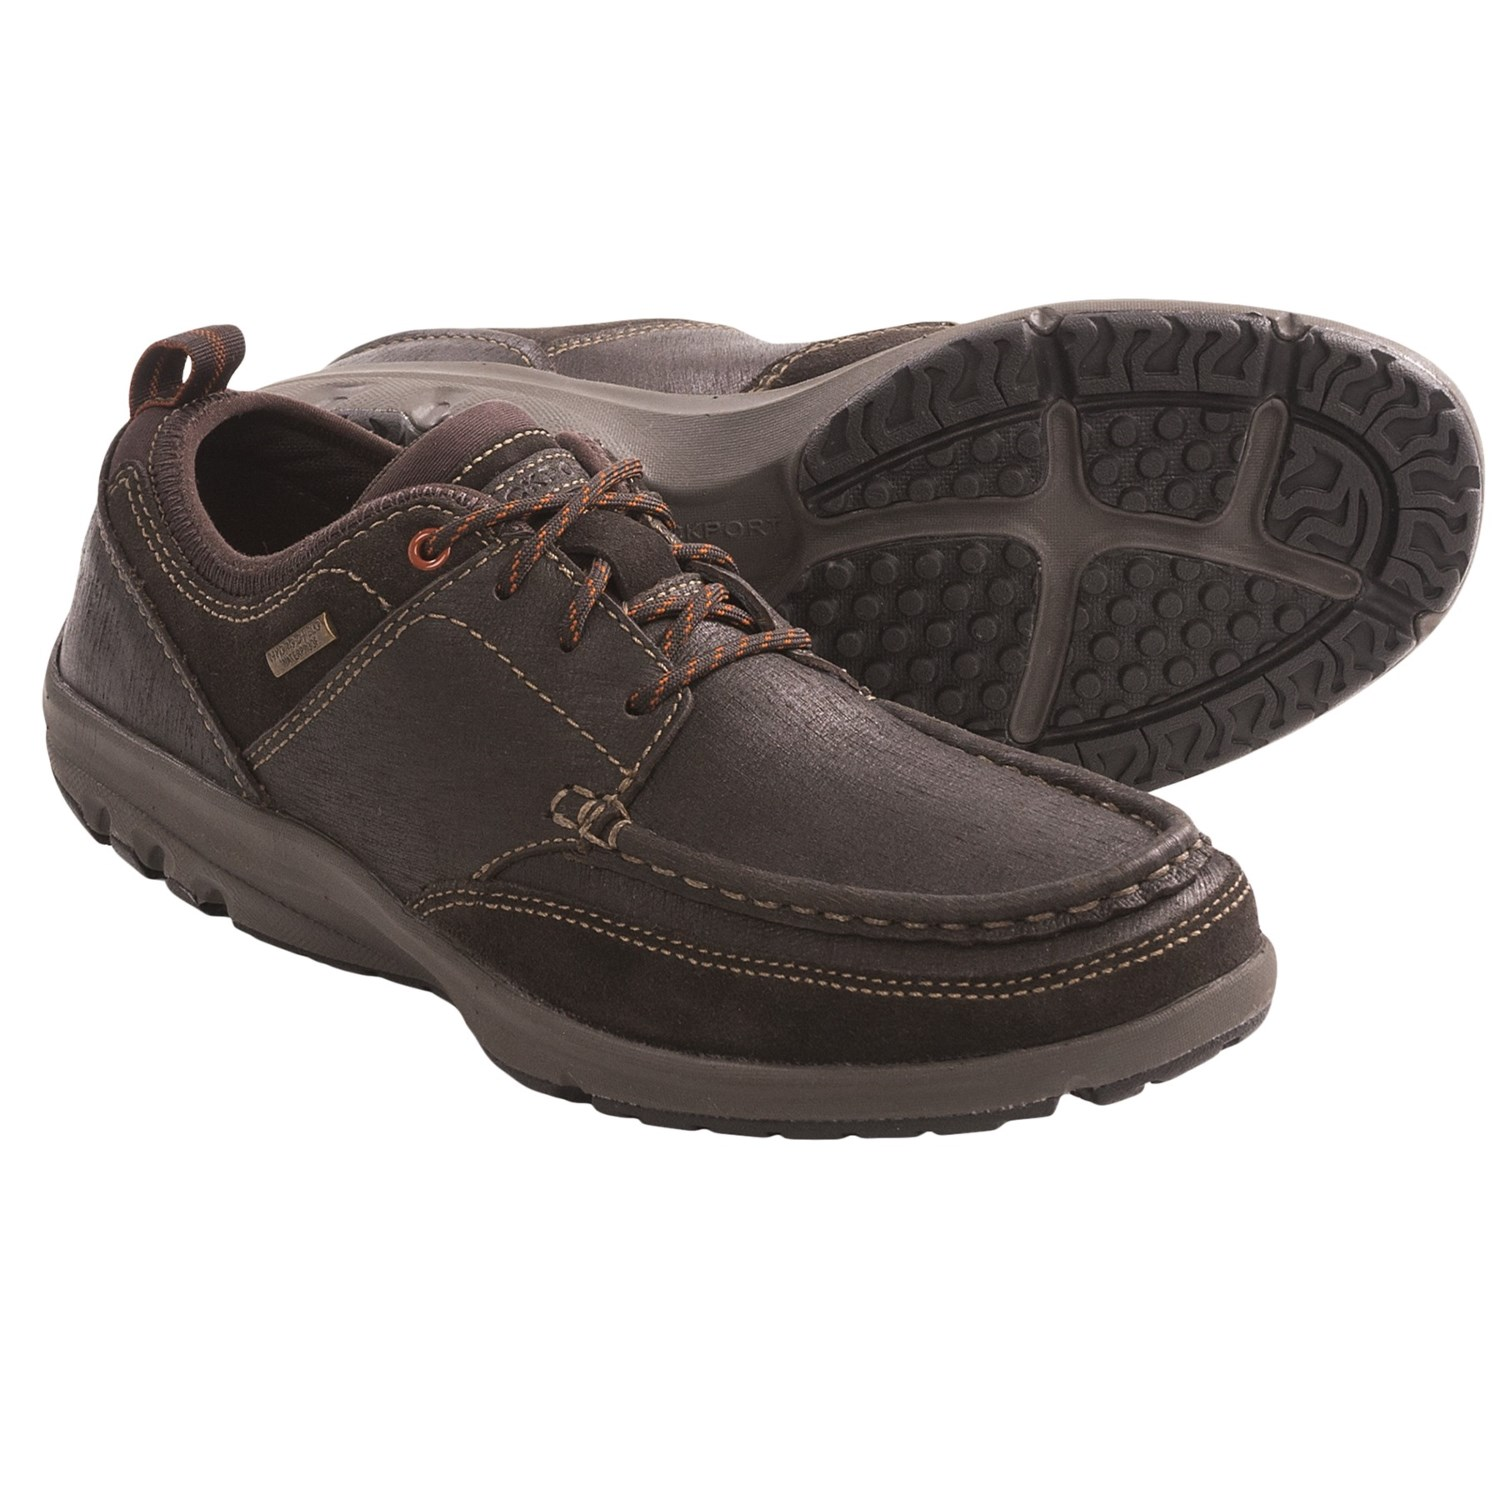 rockport adventure ready oxford shoes for 7048g